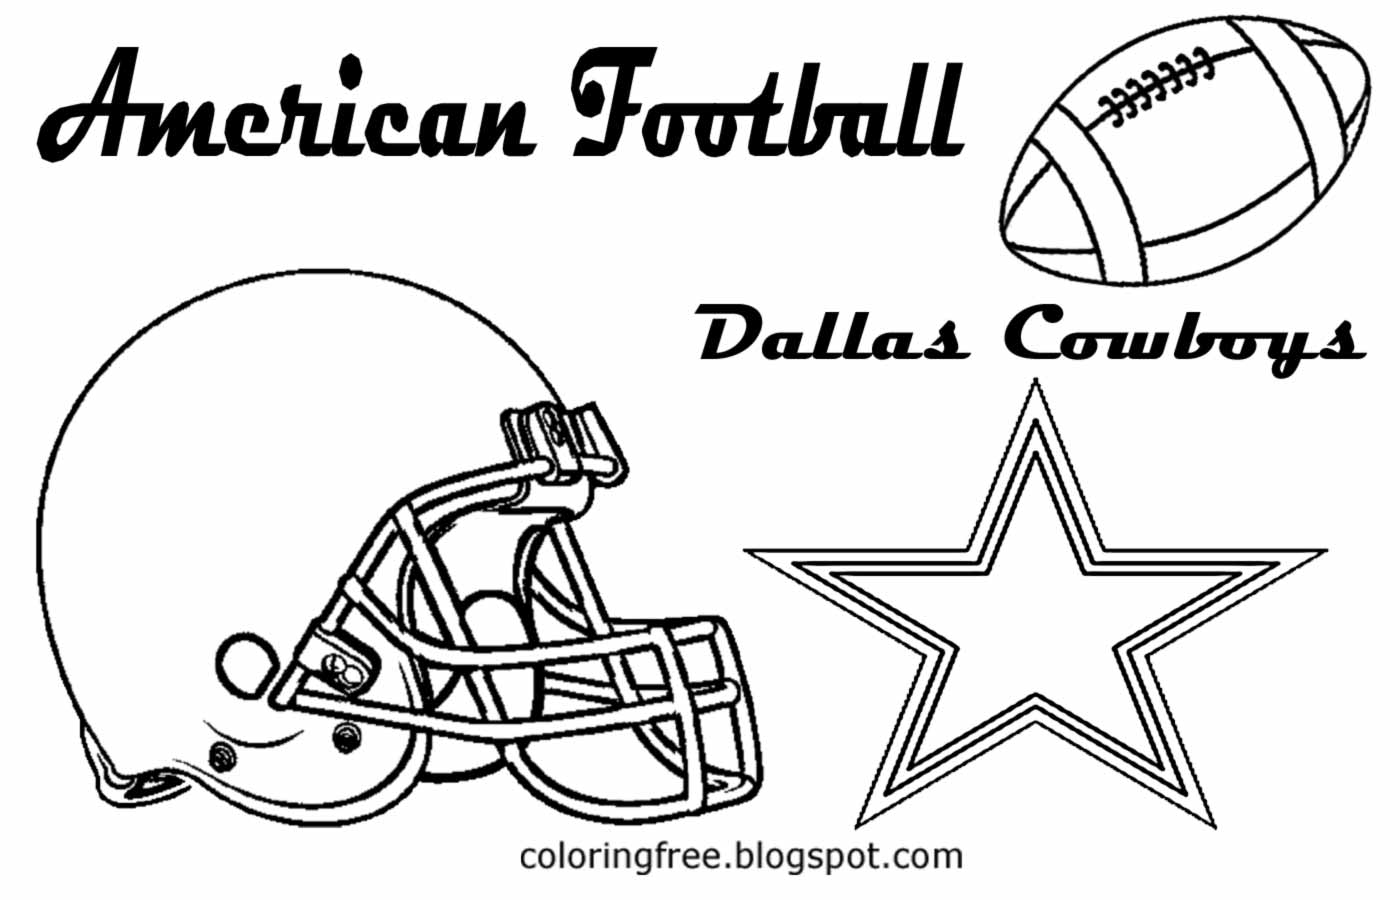 Free Coloring Pages Printable Pictures To Color Kids Dallas Cowboys Logo Coloring Page Printable